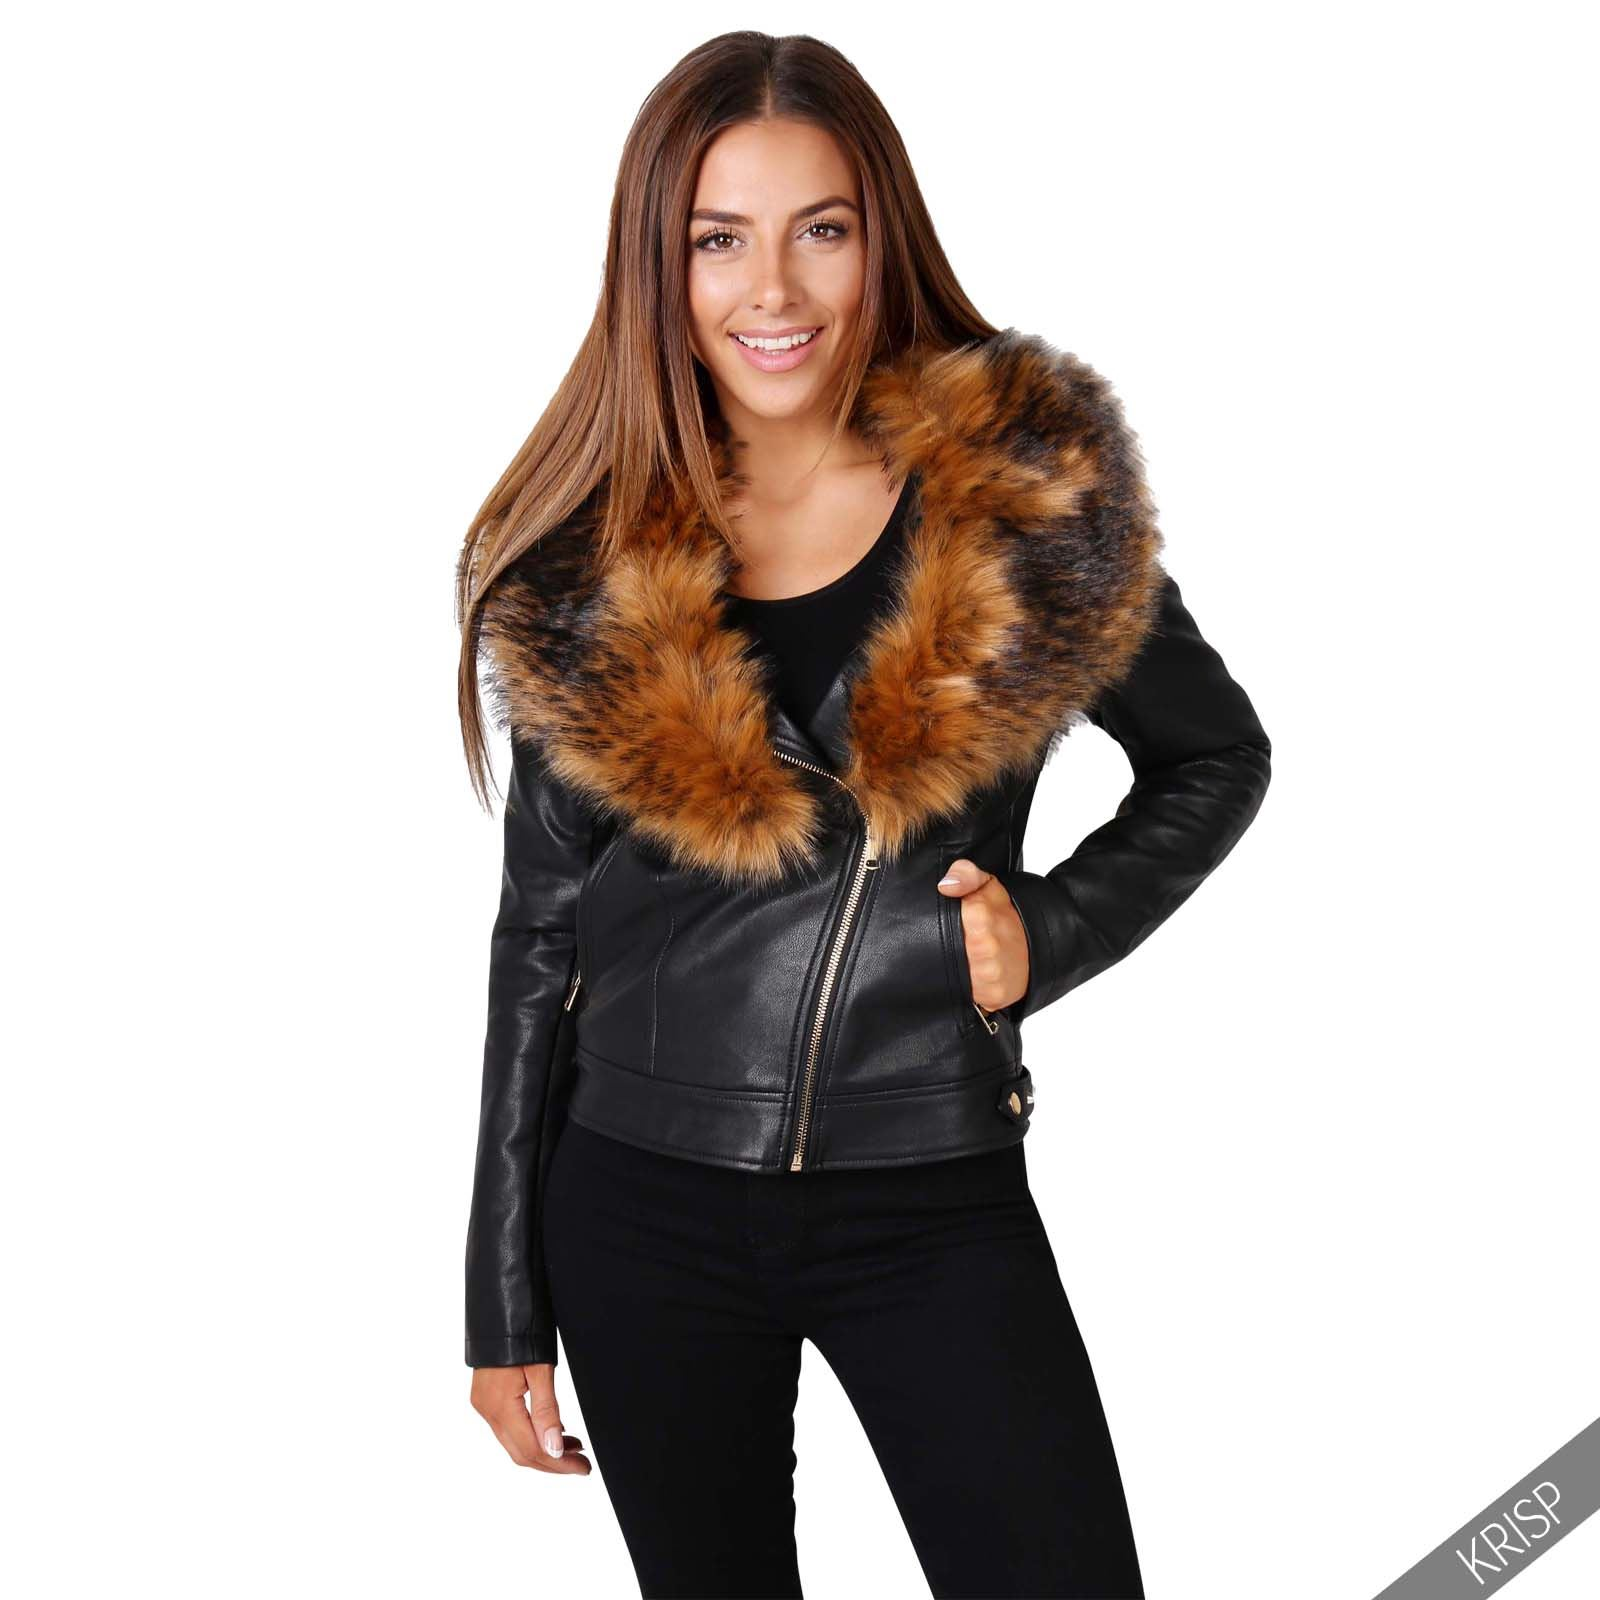 femmes veste jacket cuir manteau gilet biker motard fausse fourrure bomber mode ebay. Black Bedroom Furniture Sets. Home Design Ideas